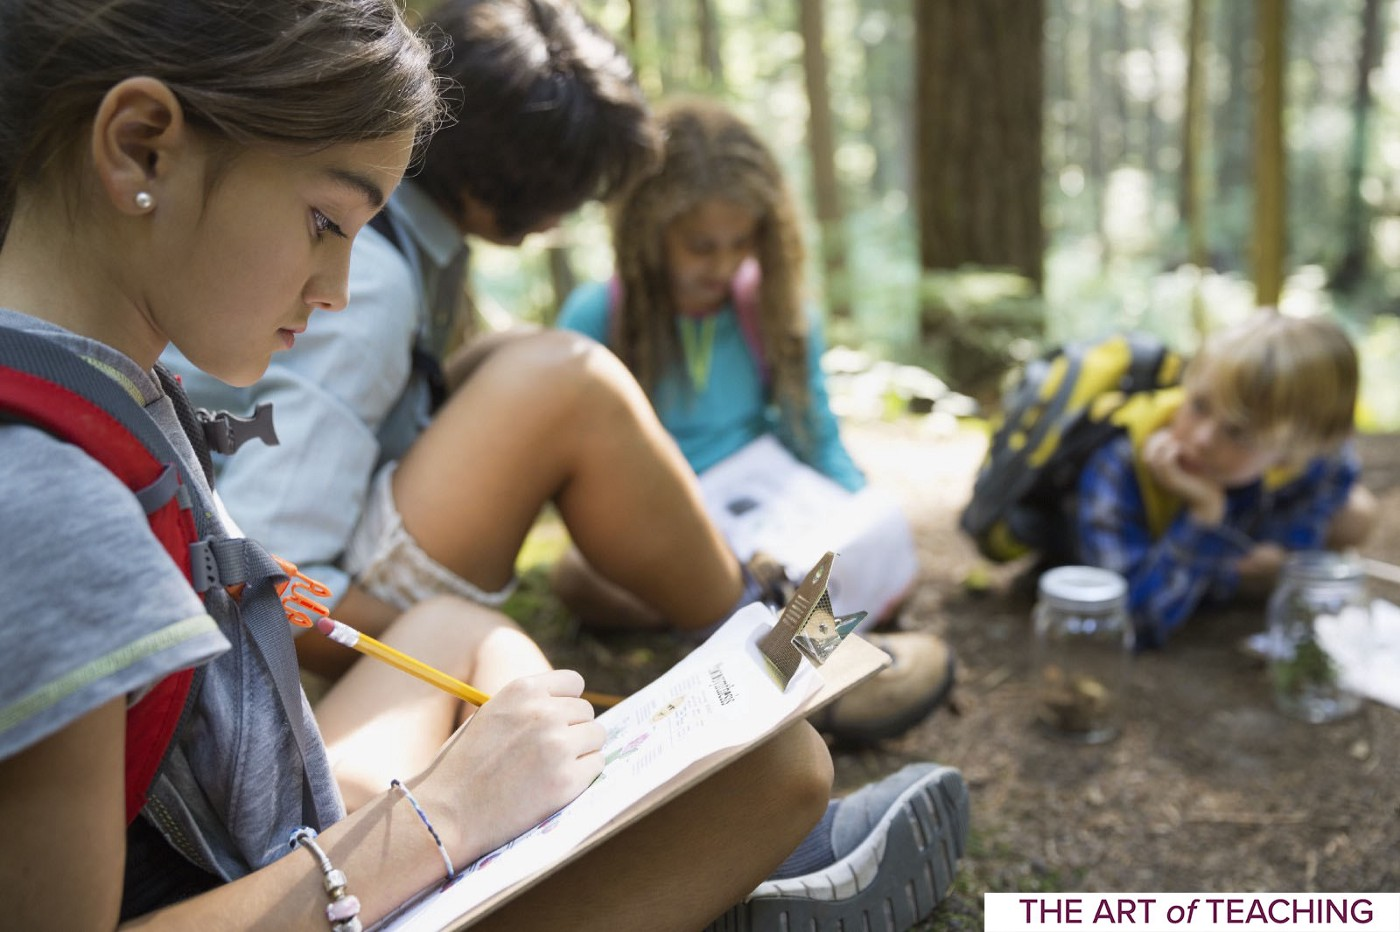 A small group of kids doing outdoor learning activities in the woods